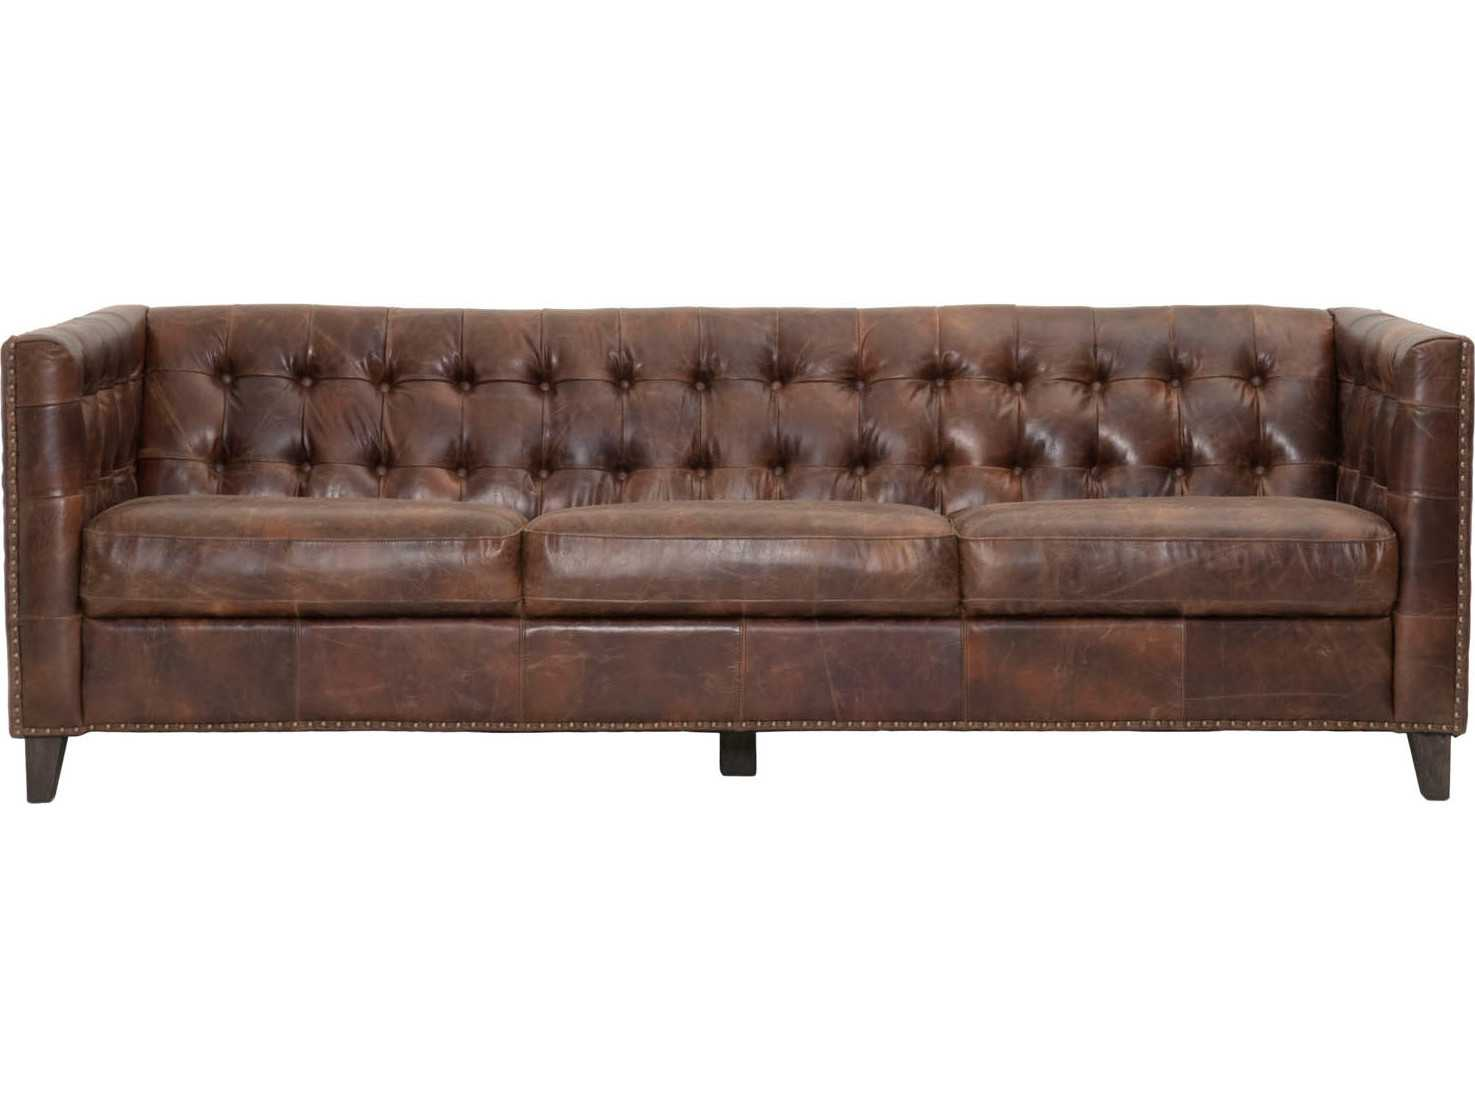 Antique Leather Sofa H38